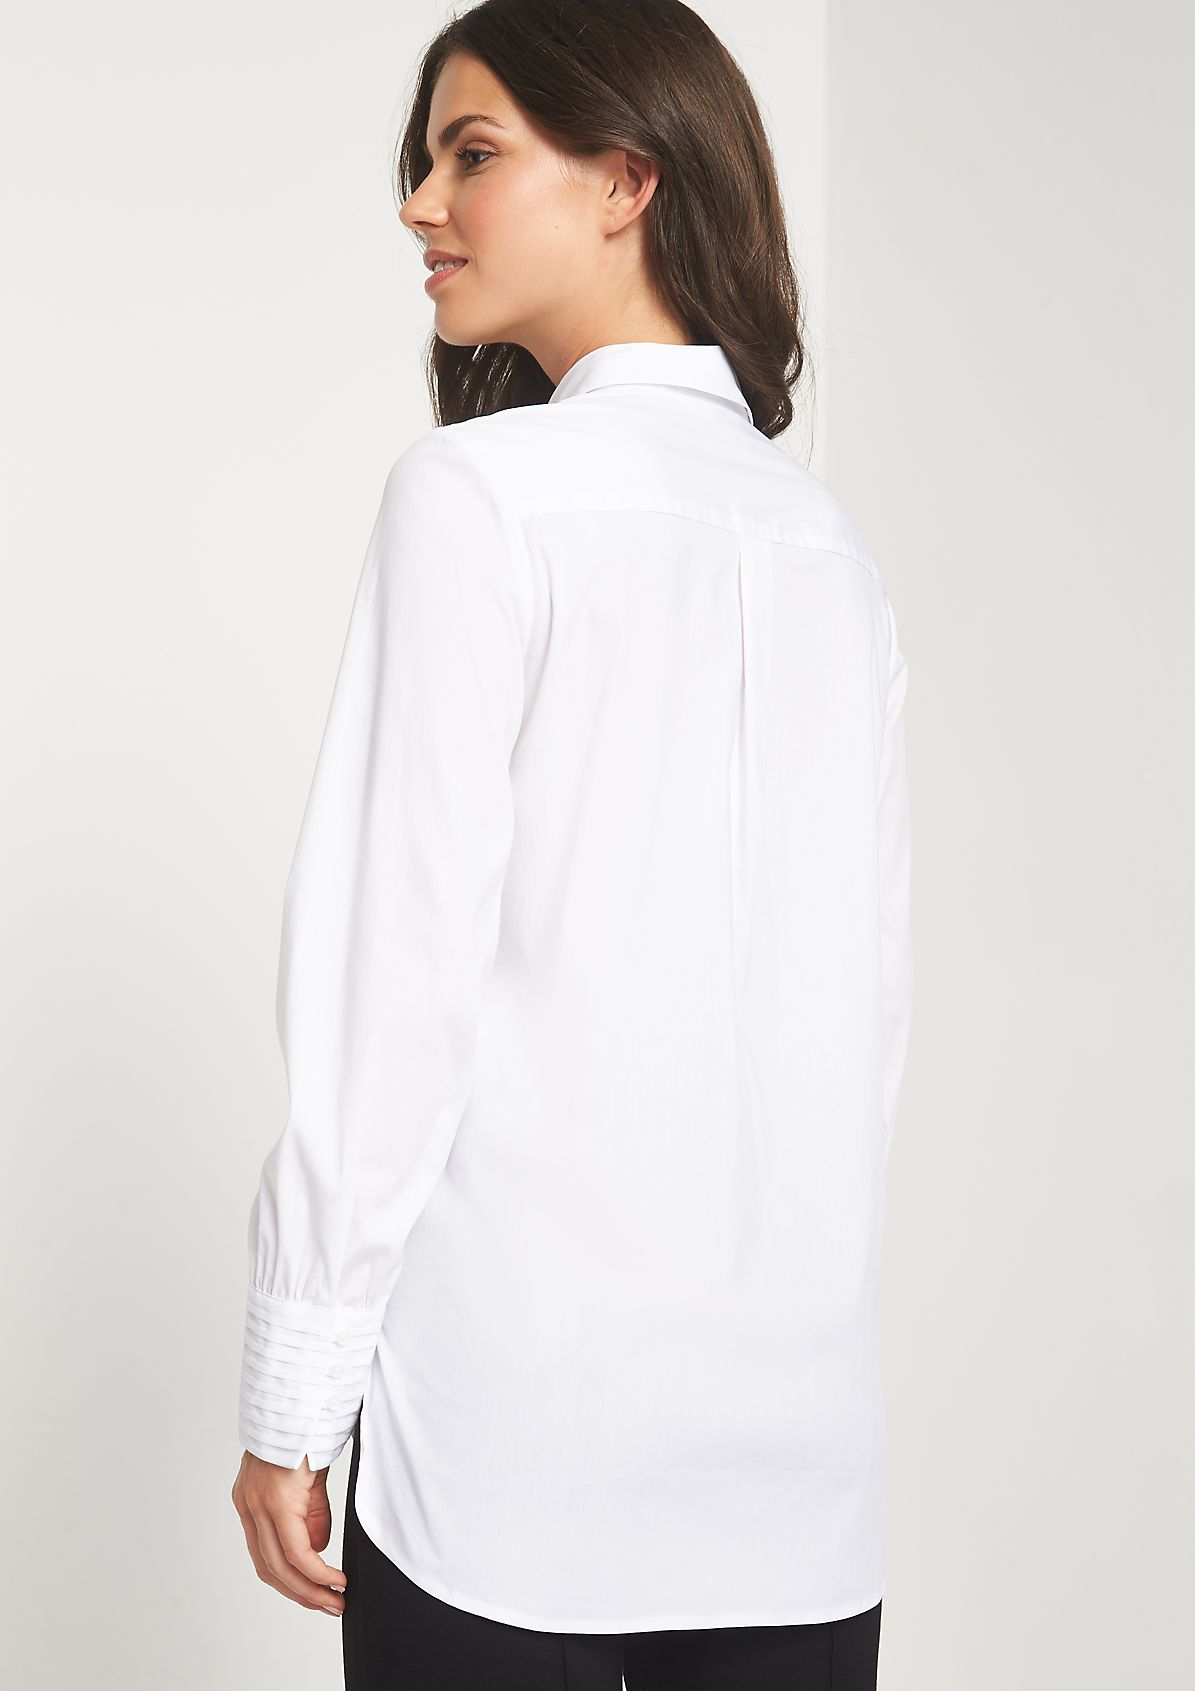 Elegant business blouse with fine details from comma